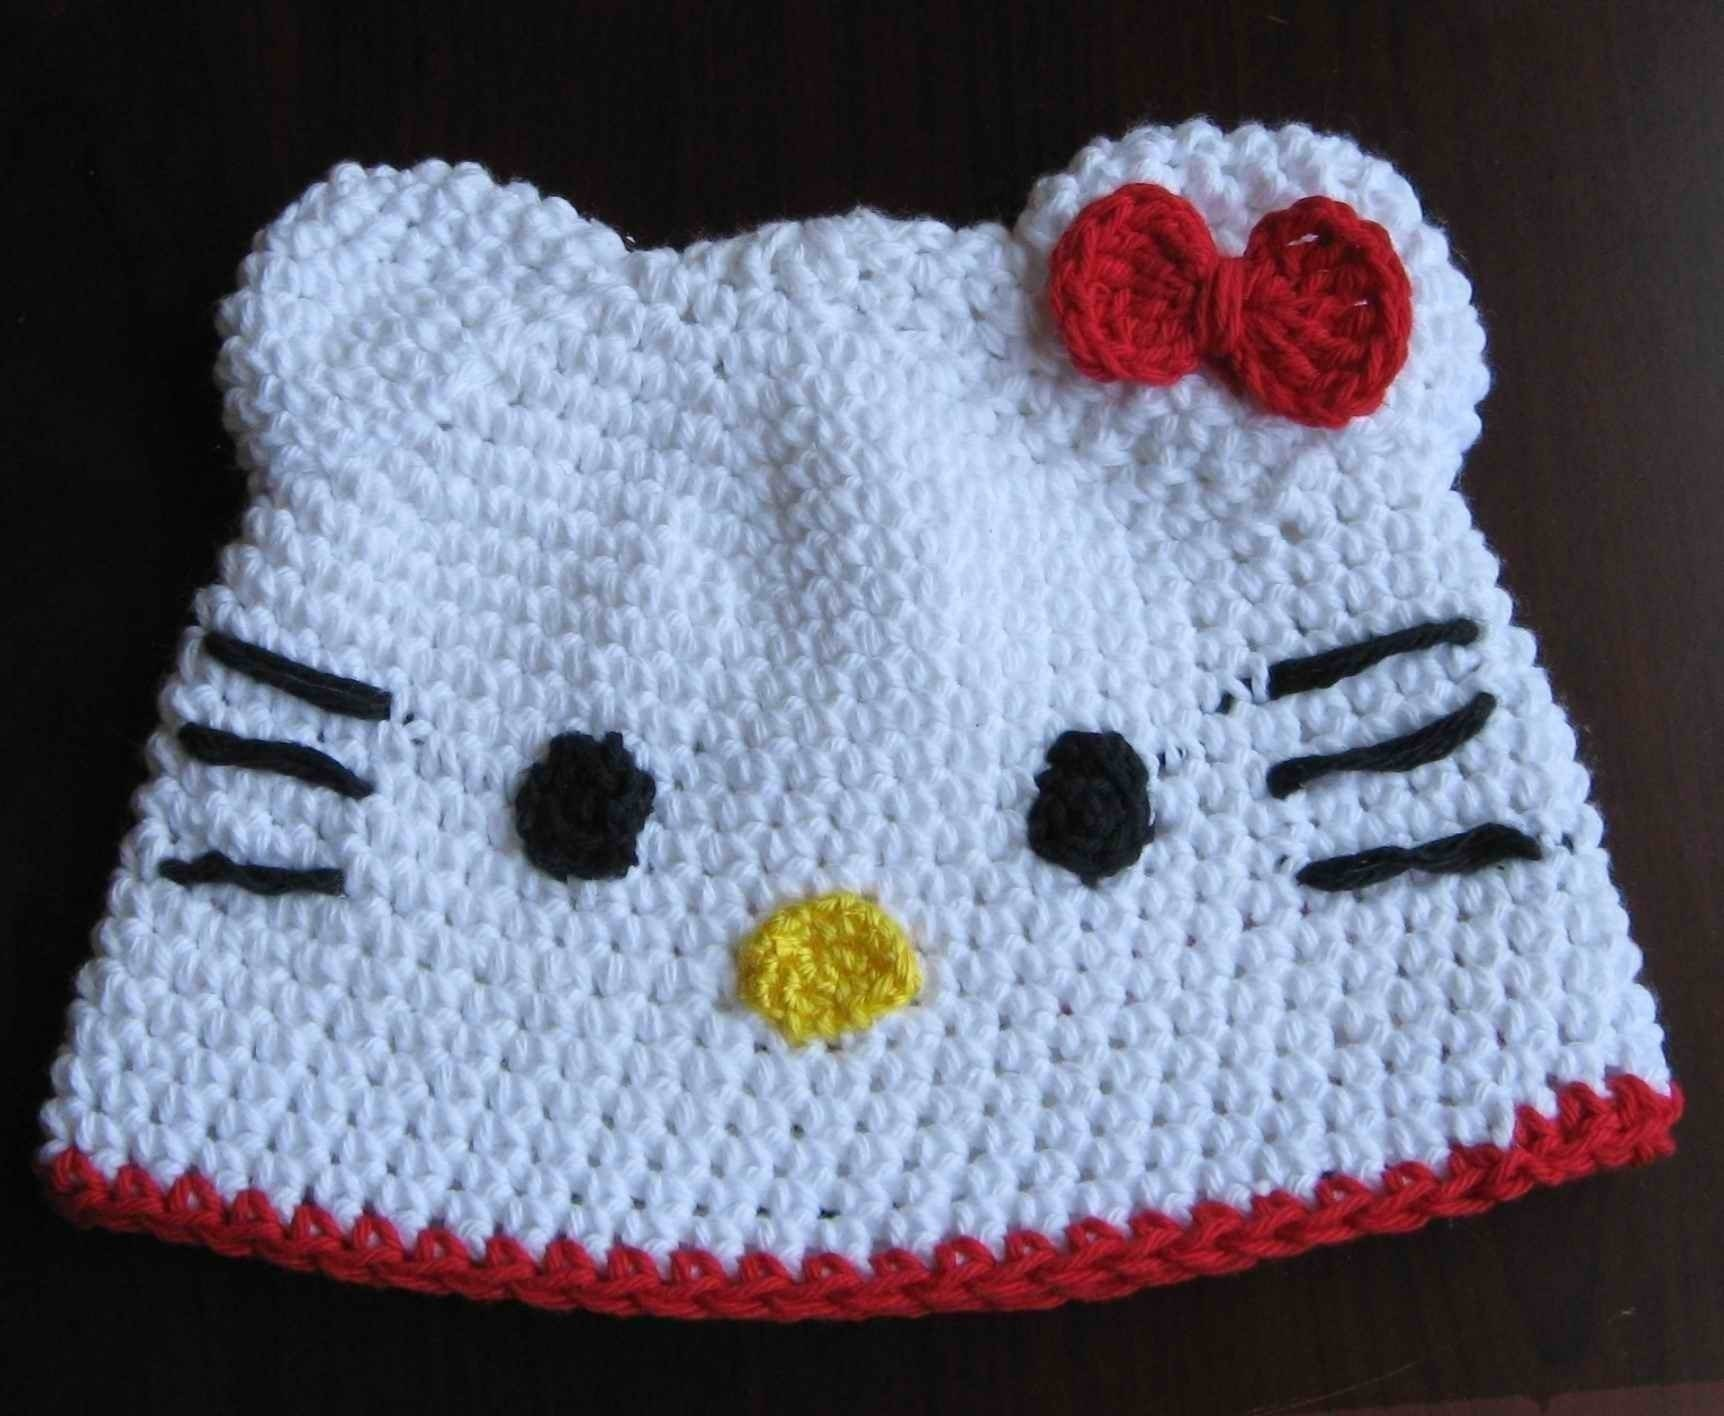 Free Crochet Pattern For A Hello Kitty Hat : PATTERN crocheted Hello Kitty beanie hat in size of 12 24